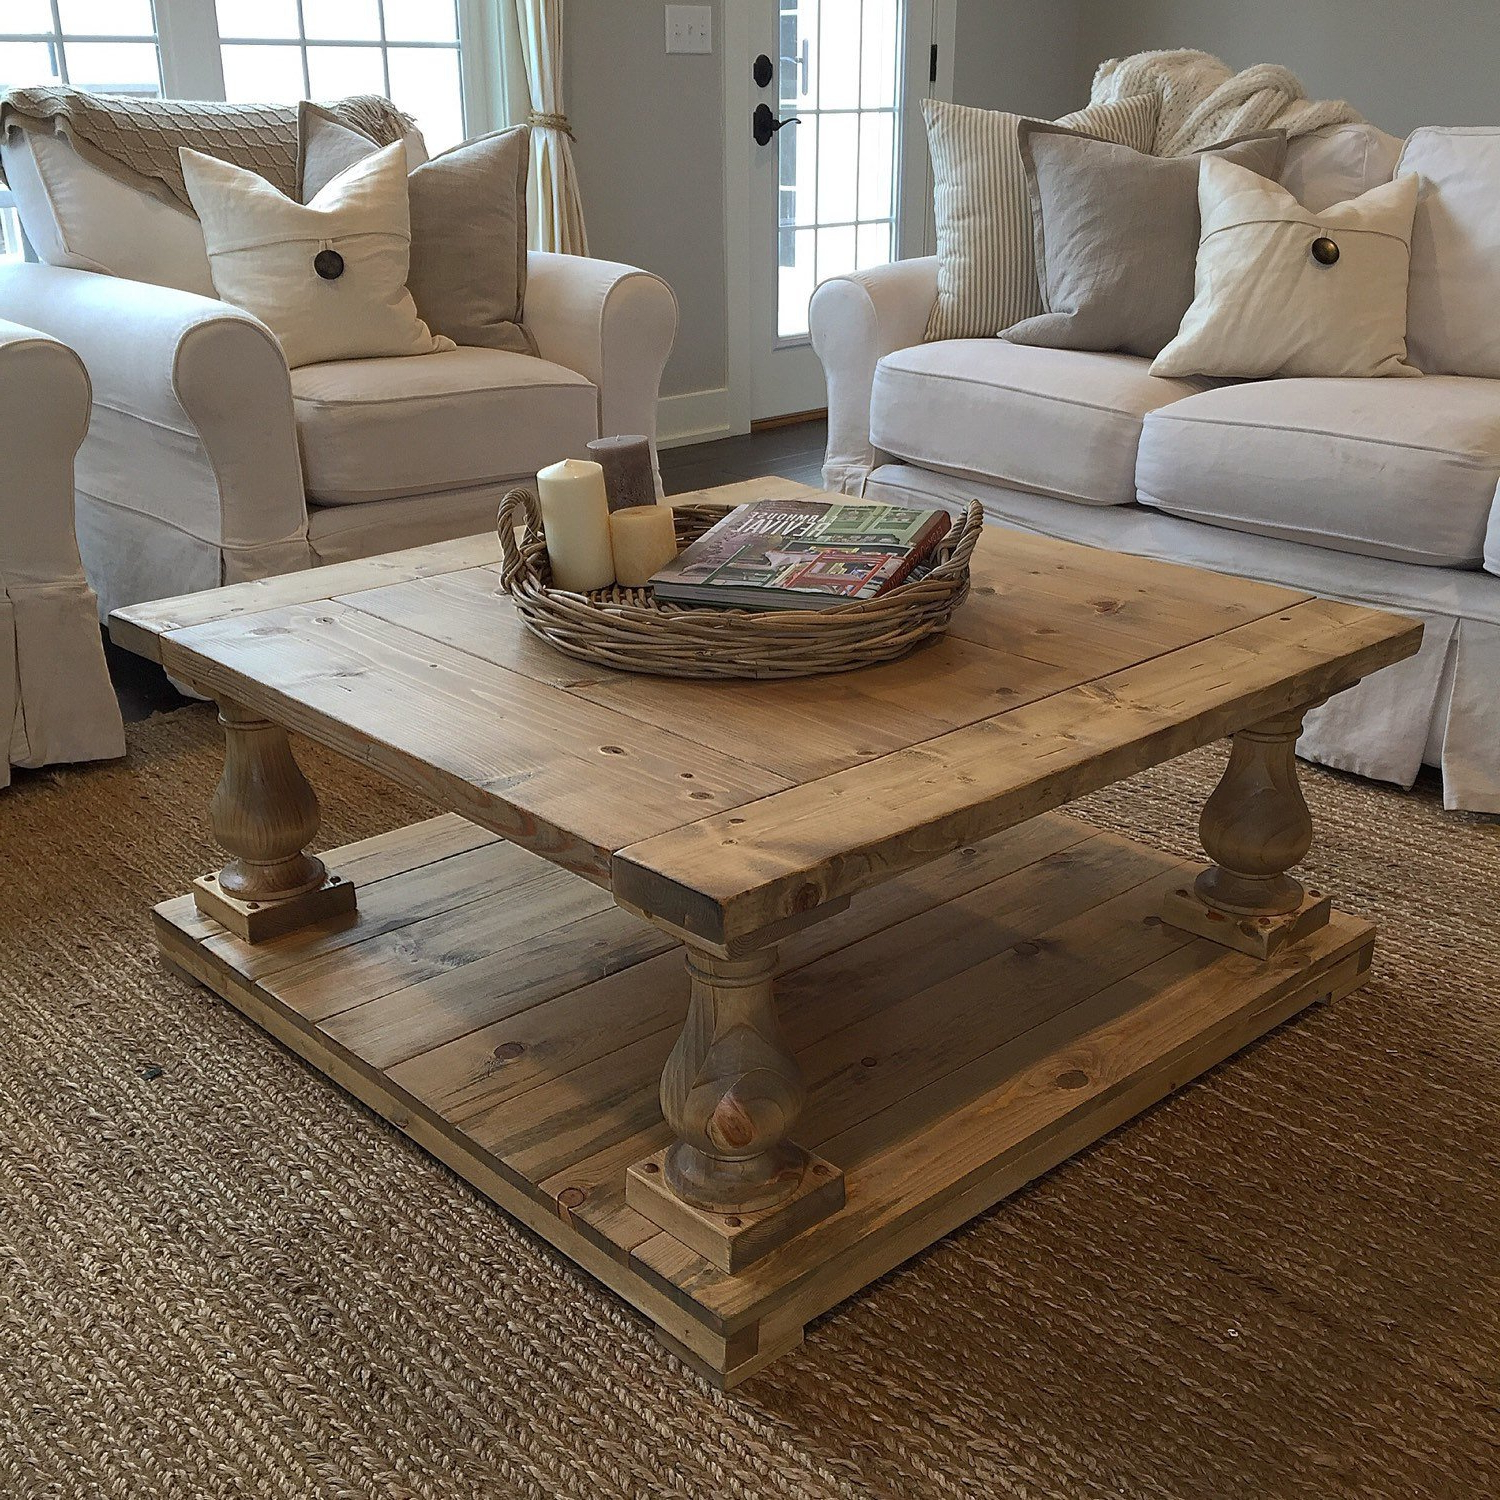 Large Scale Chinese Farmhouse Coffee Tables With 2019 Rustic Farmhouse Cottage Baluster Coffee Table (View 6 of 20)